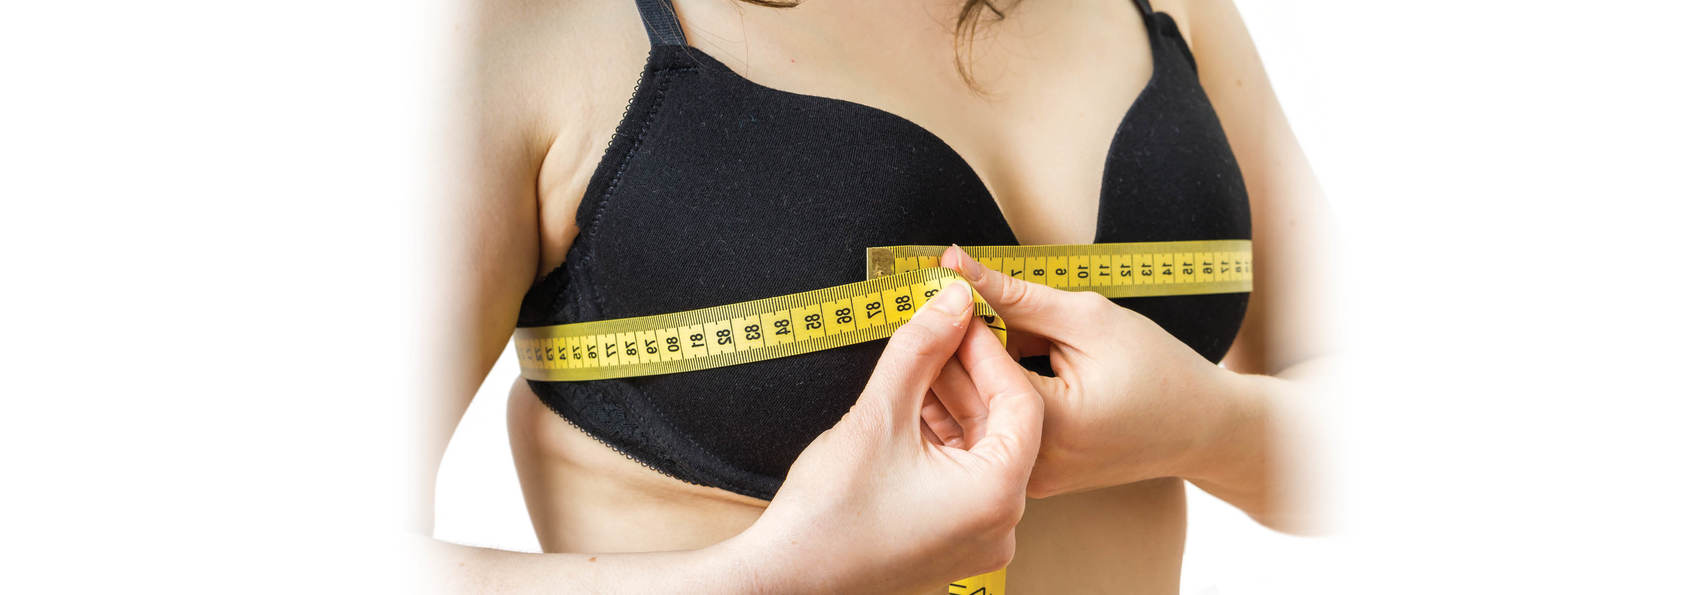 Breast Reduction Plastic Surgery at artemedica in sonoma county